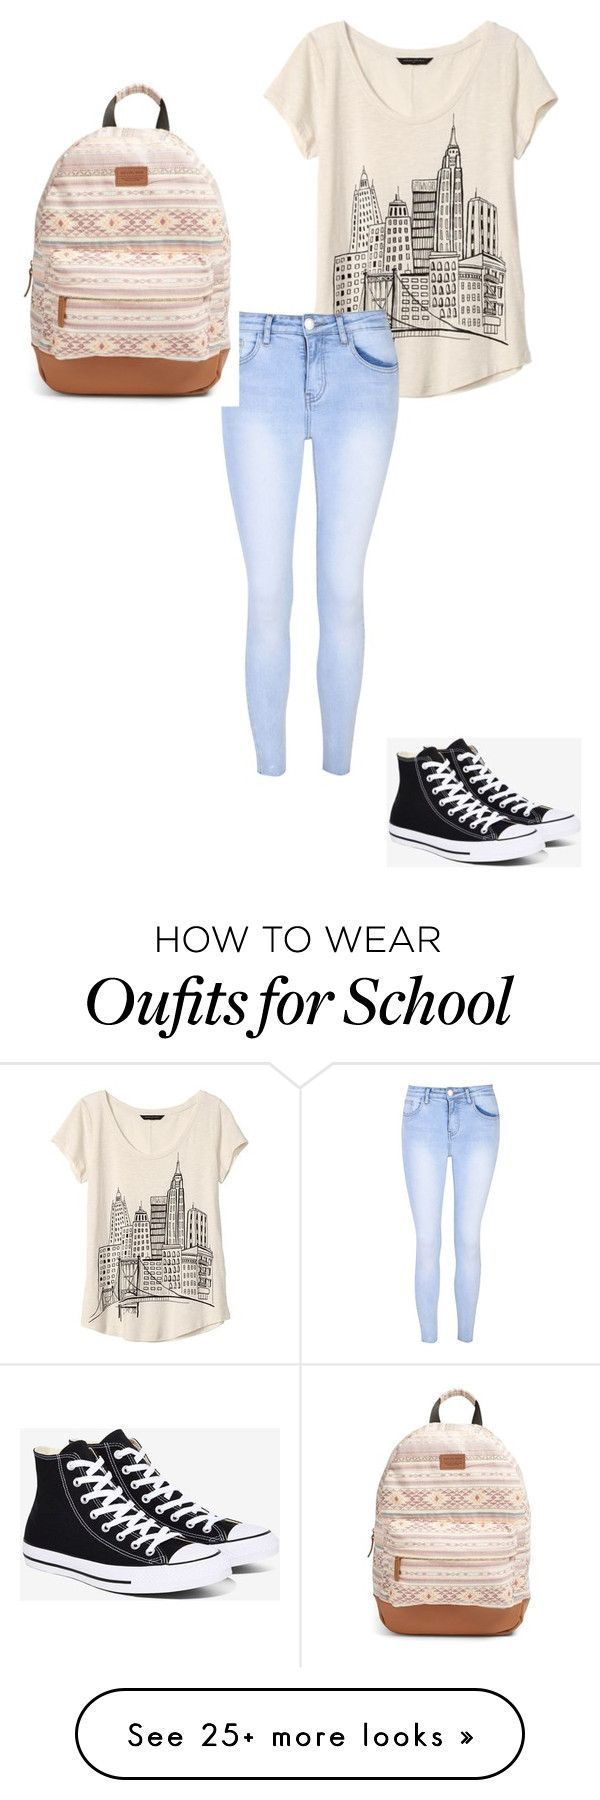 I have all this (except the shirt) I am wearing this tomorrow except different shirt